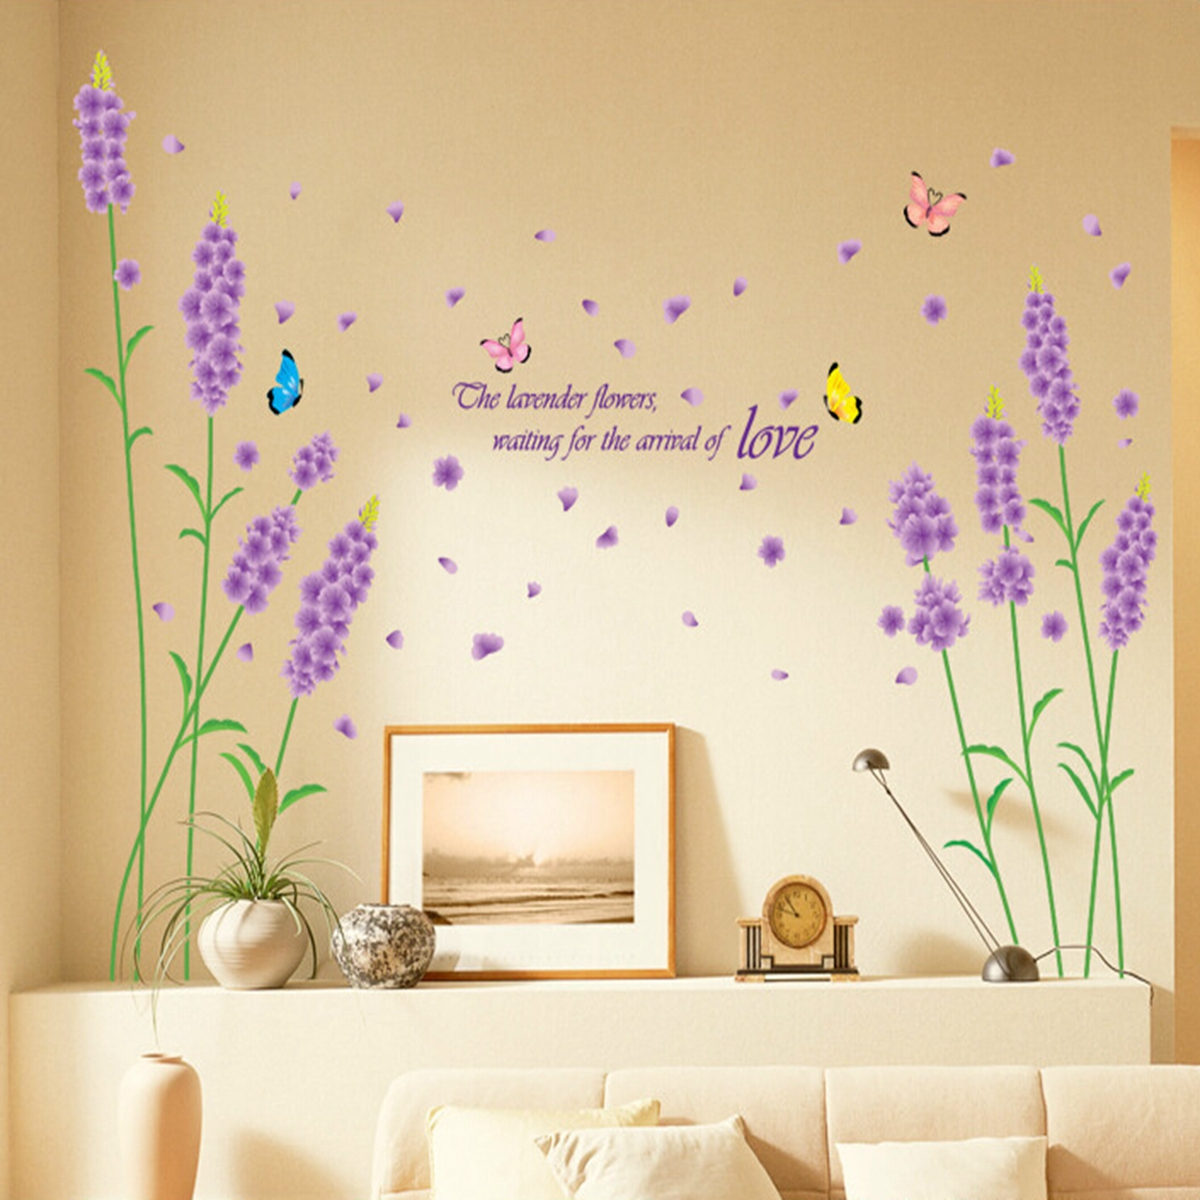 Sticker mural sakura fleur autocollant romantique d coration salon chambre - Decoration mural salon ...